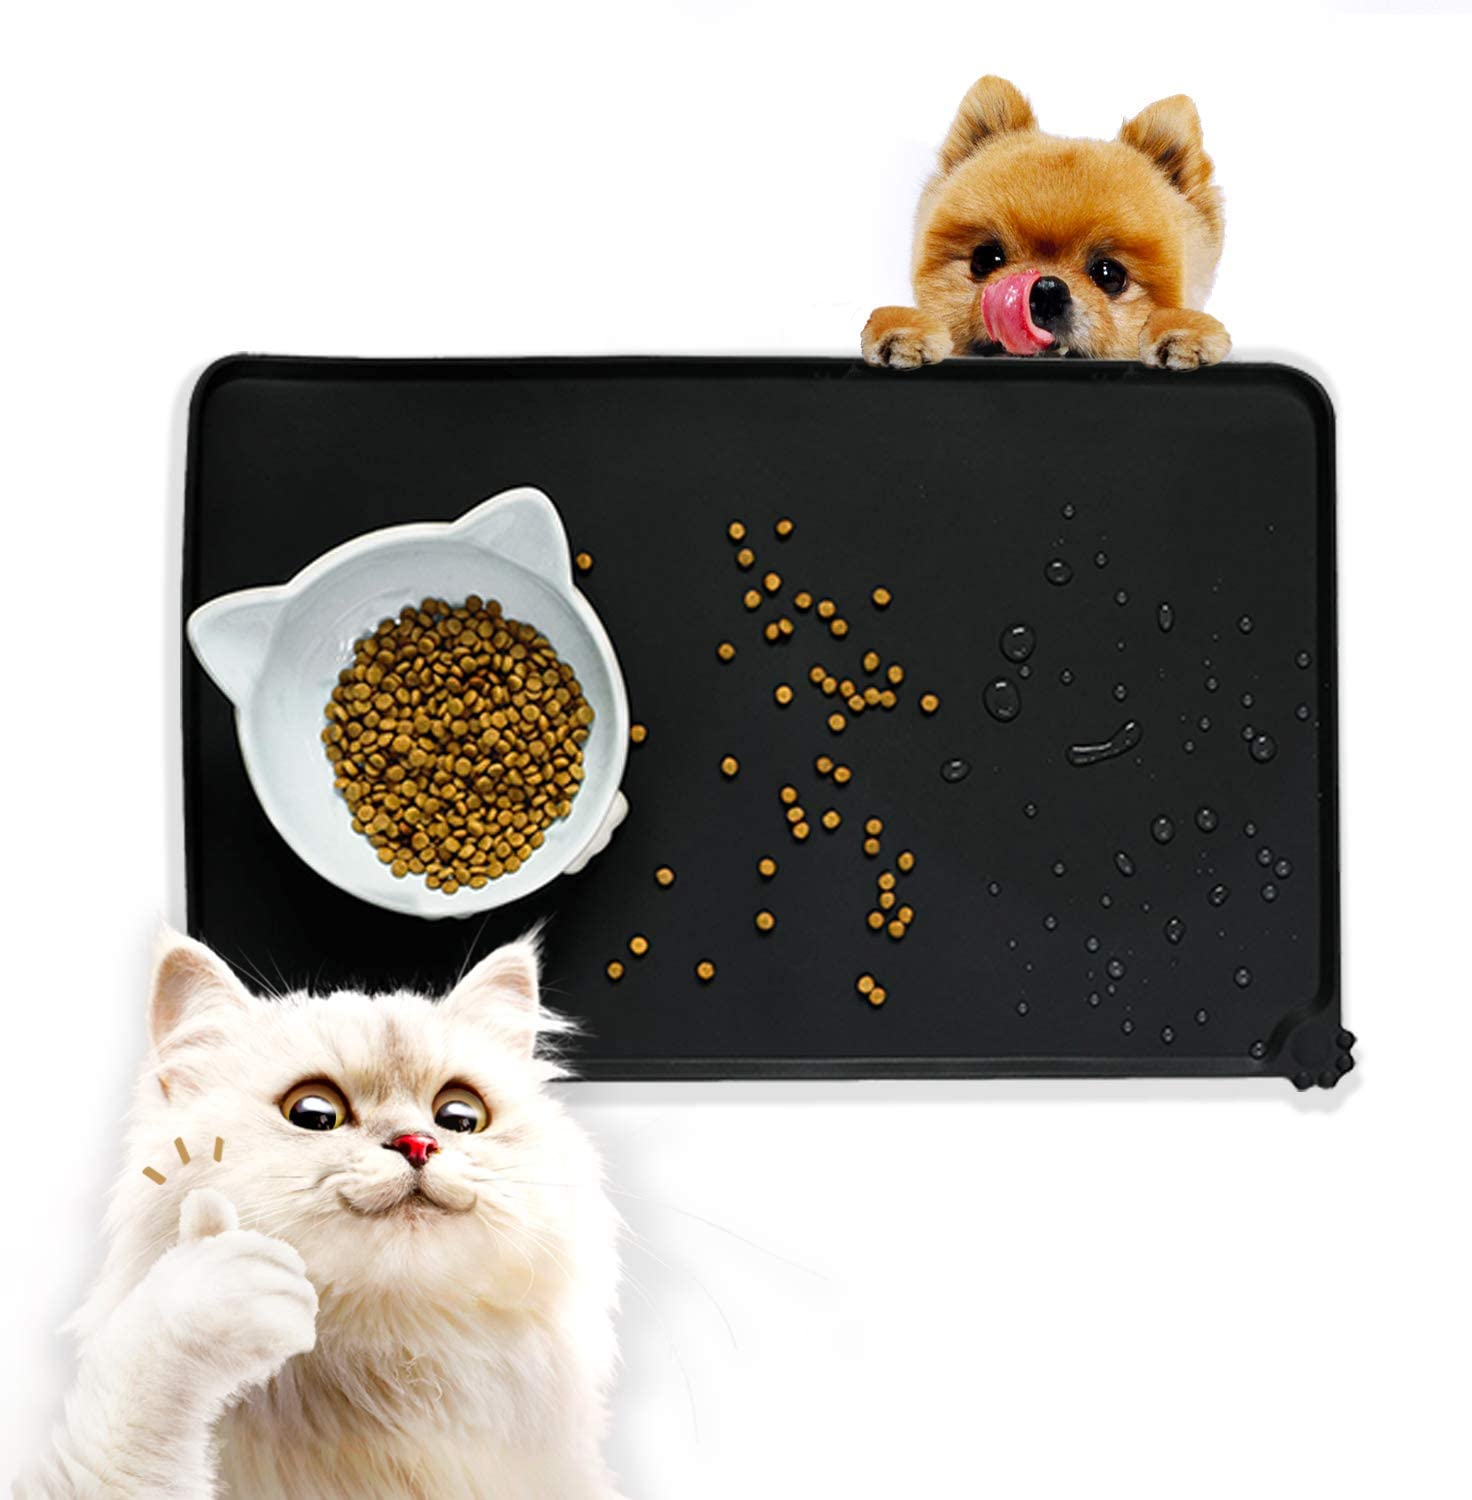 SunteeLong Silicone Dog Cat Food Mat for Floor Pet Waterproof Feeding Bowl Mats Non-Stick Food Pad Non-Slip Anti-Spill Easy Clean Washable Dog Placemat for Food and Water